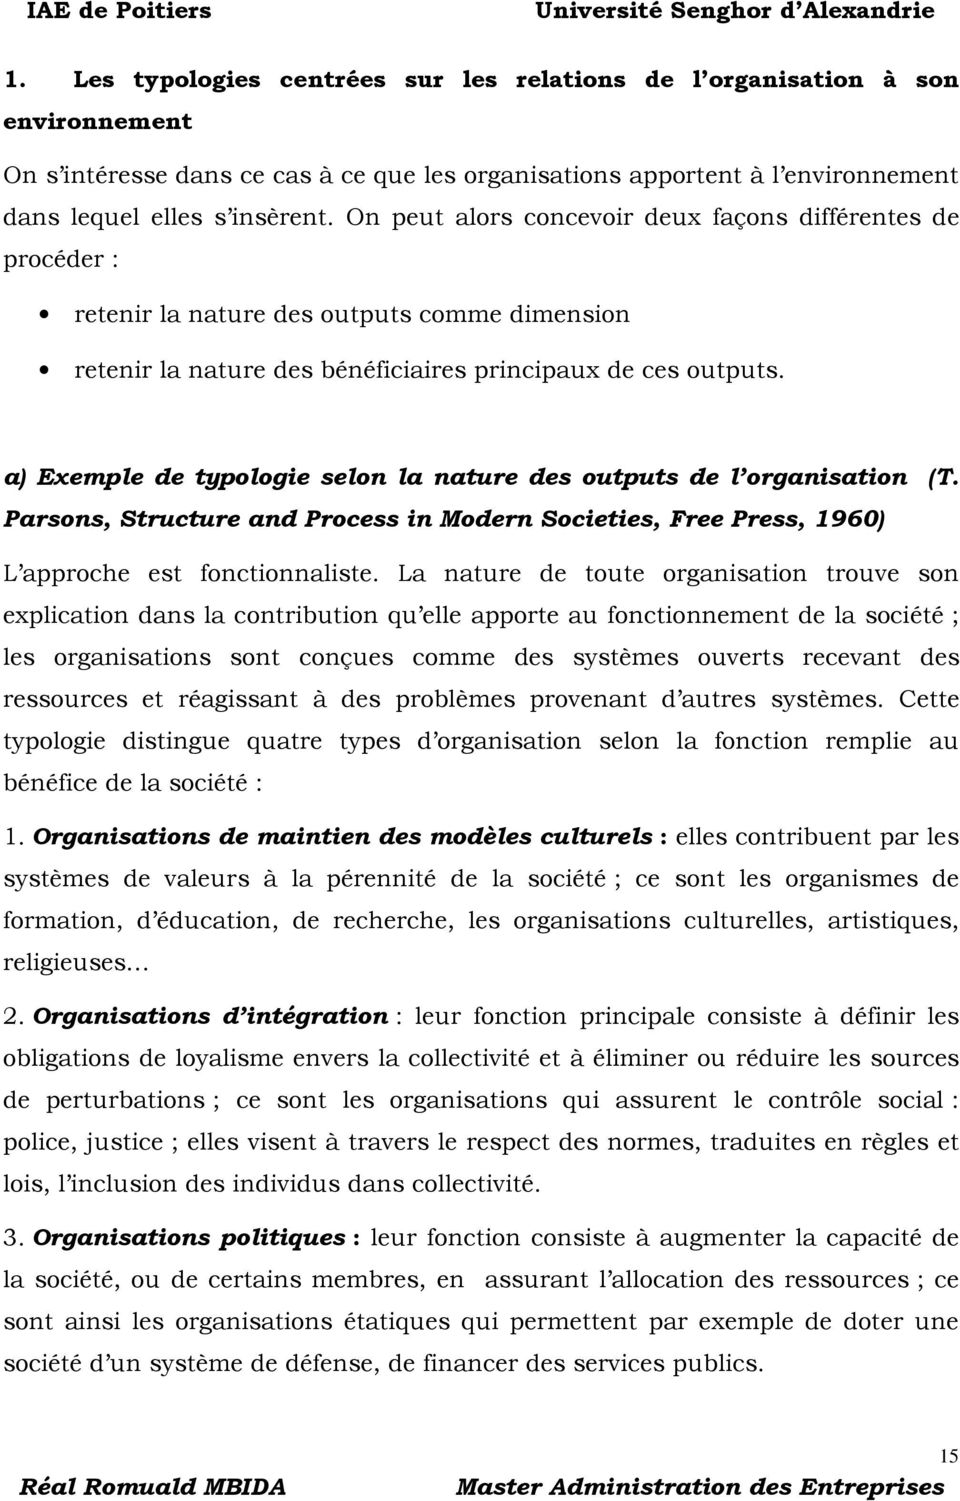 a) Exemple de typologie selon la nature des outputs de l organisation (T. Parsons, Structure and Process in Modern Societies, Free Press, 1960) L approche est fonctionnaliste.